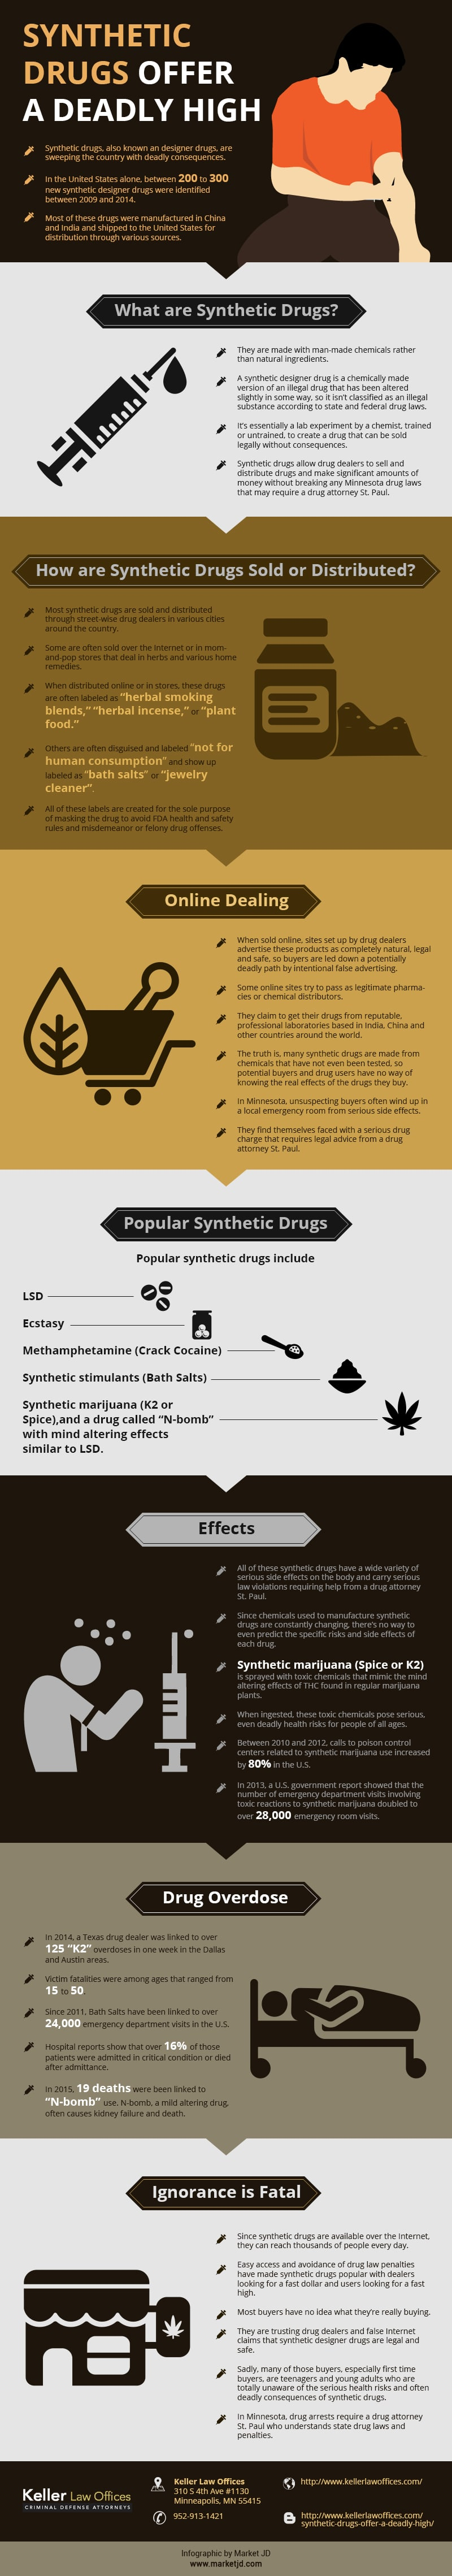 SYNTHETIC DRUGS_drug attorney st. paul